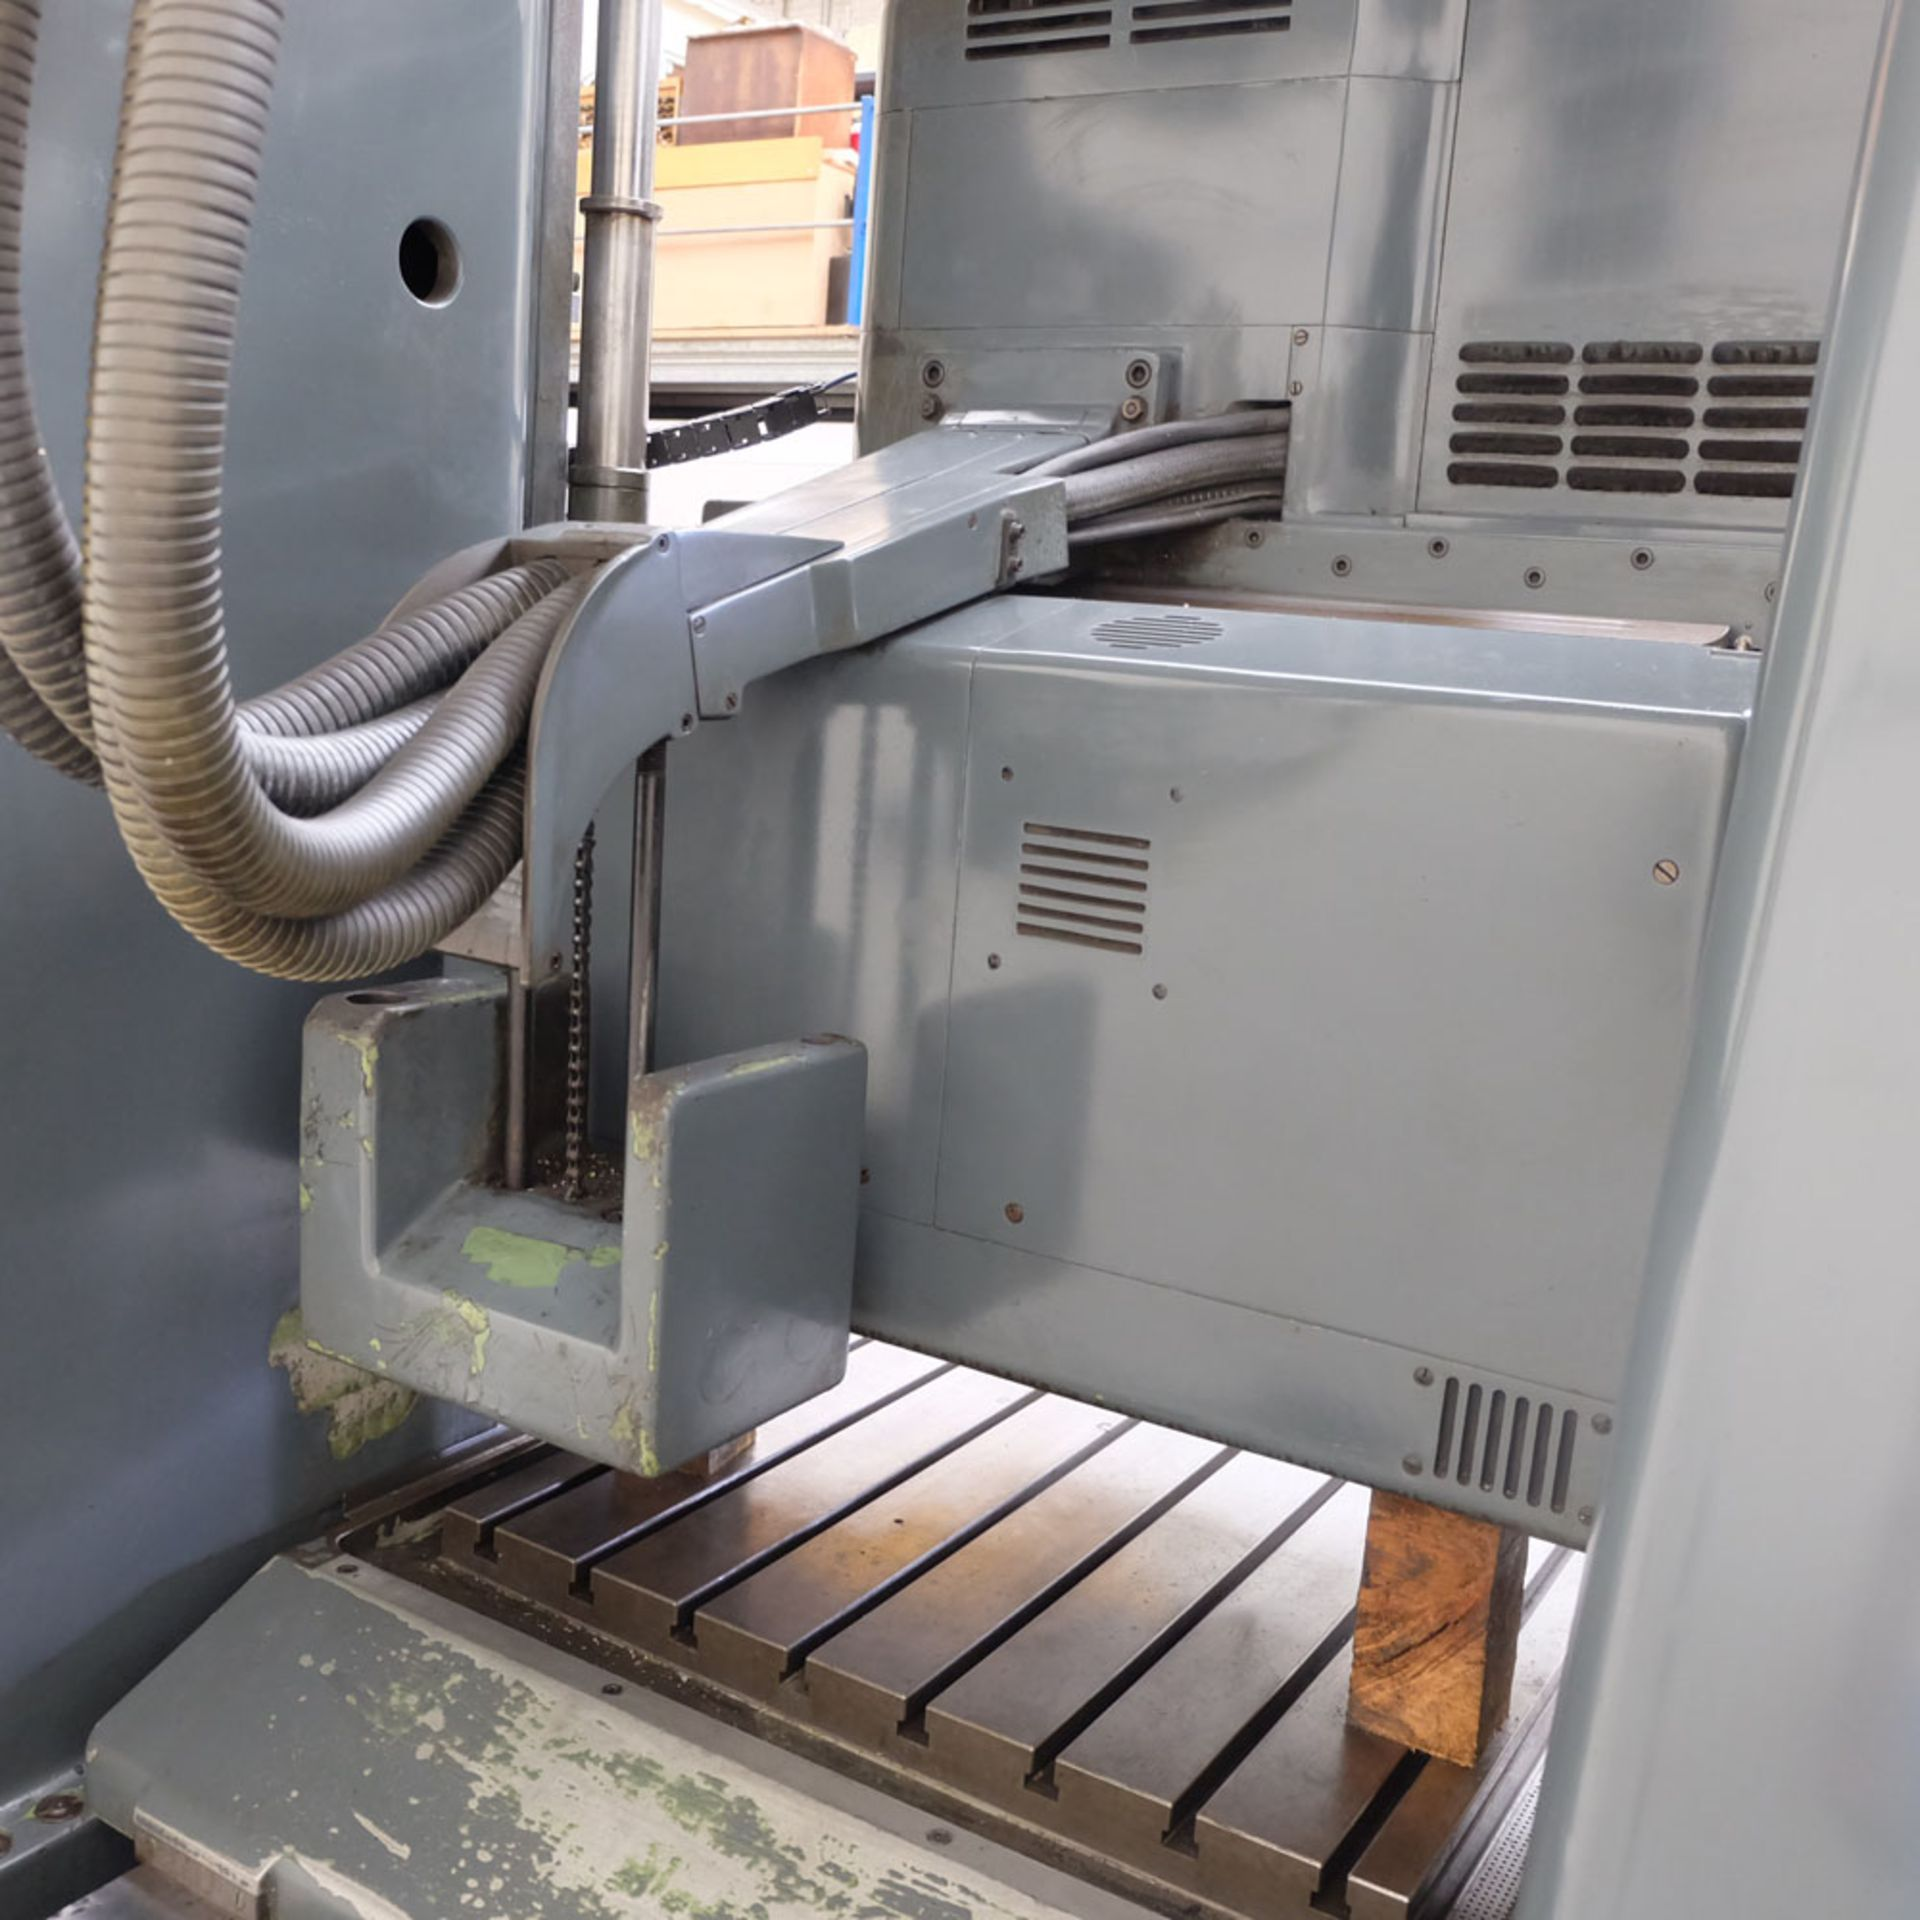 SIP Genevoise Hydroptic - 6A High Precision Jig Boring And Milling Machine. - Image 14 of 25